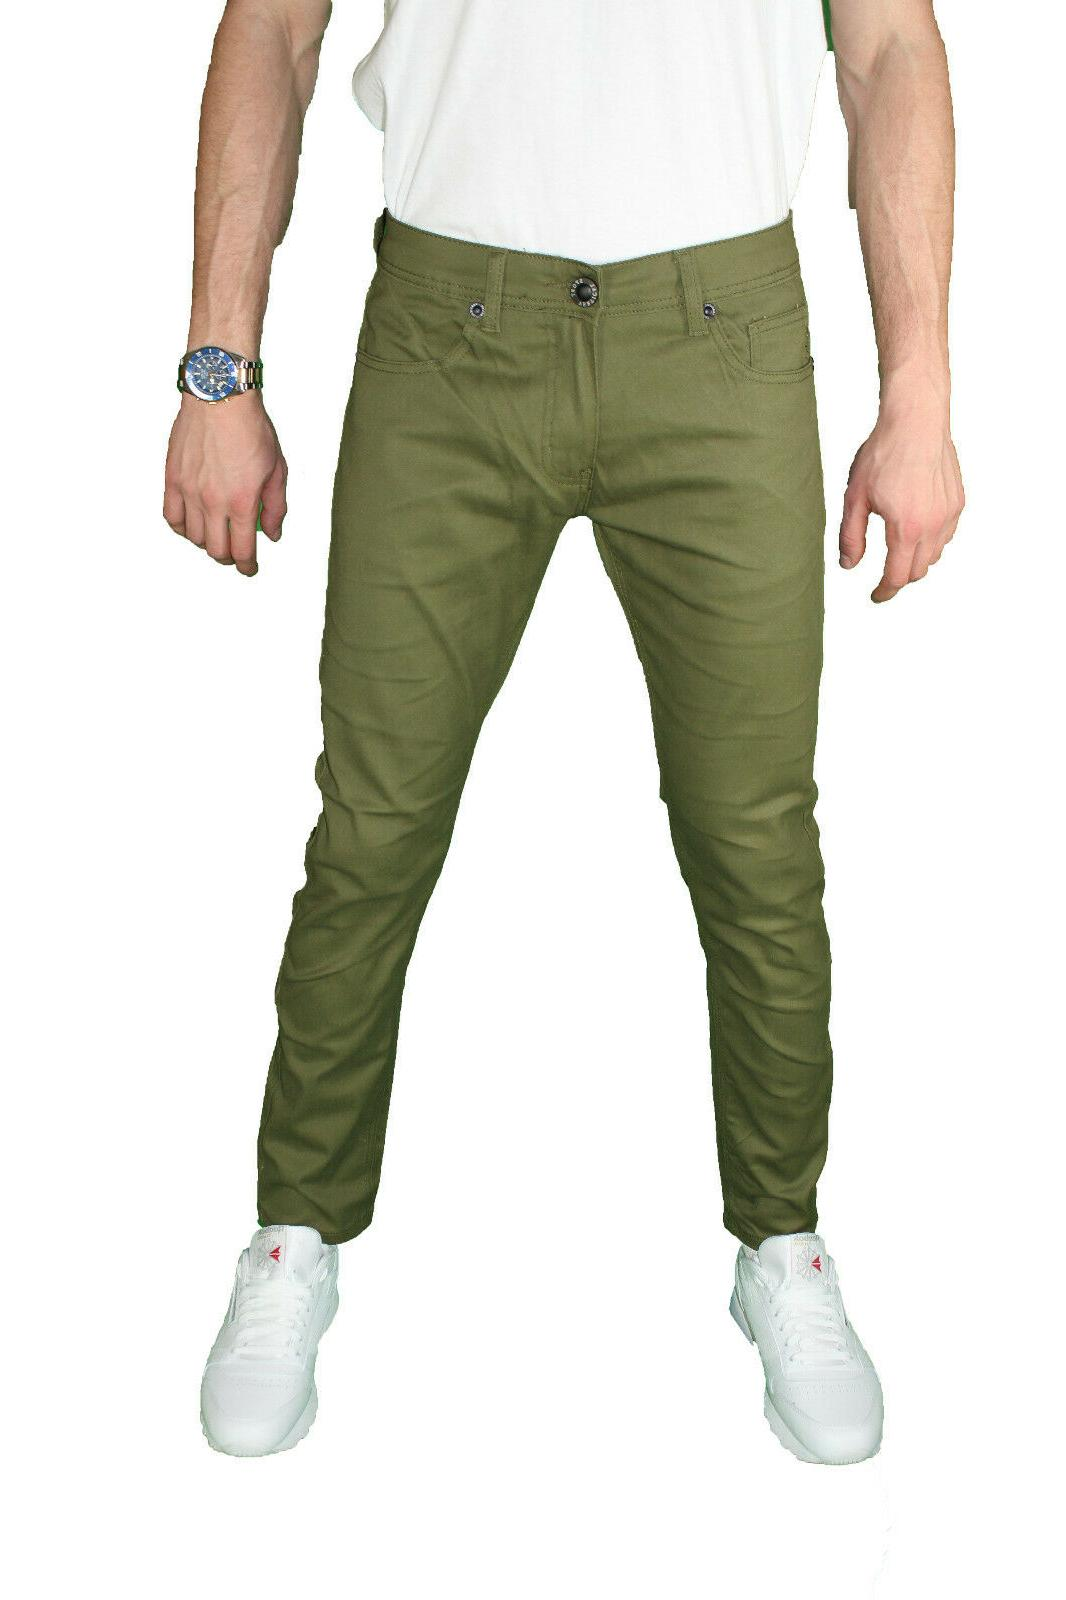 Mens Slim Stretch Pants Casual Chino Jean NEW